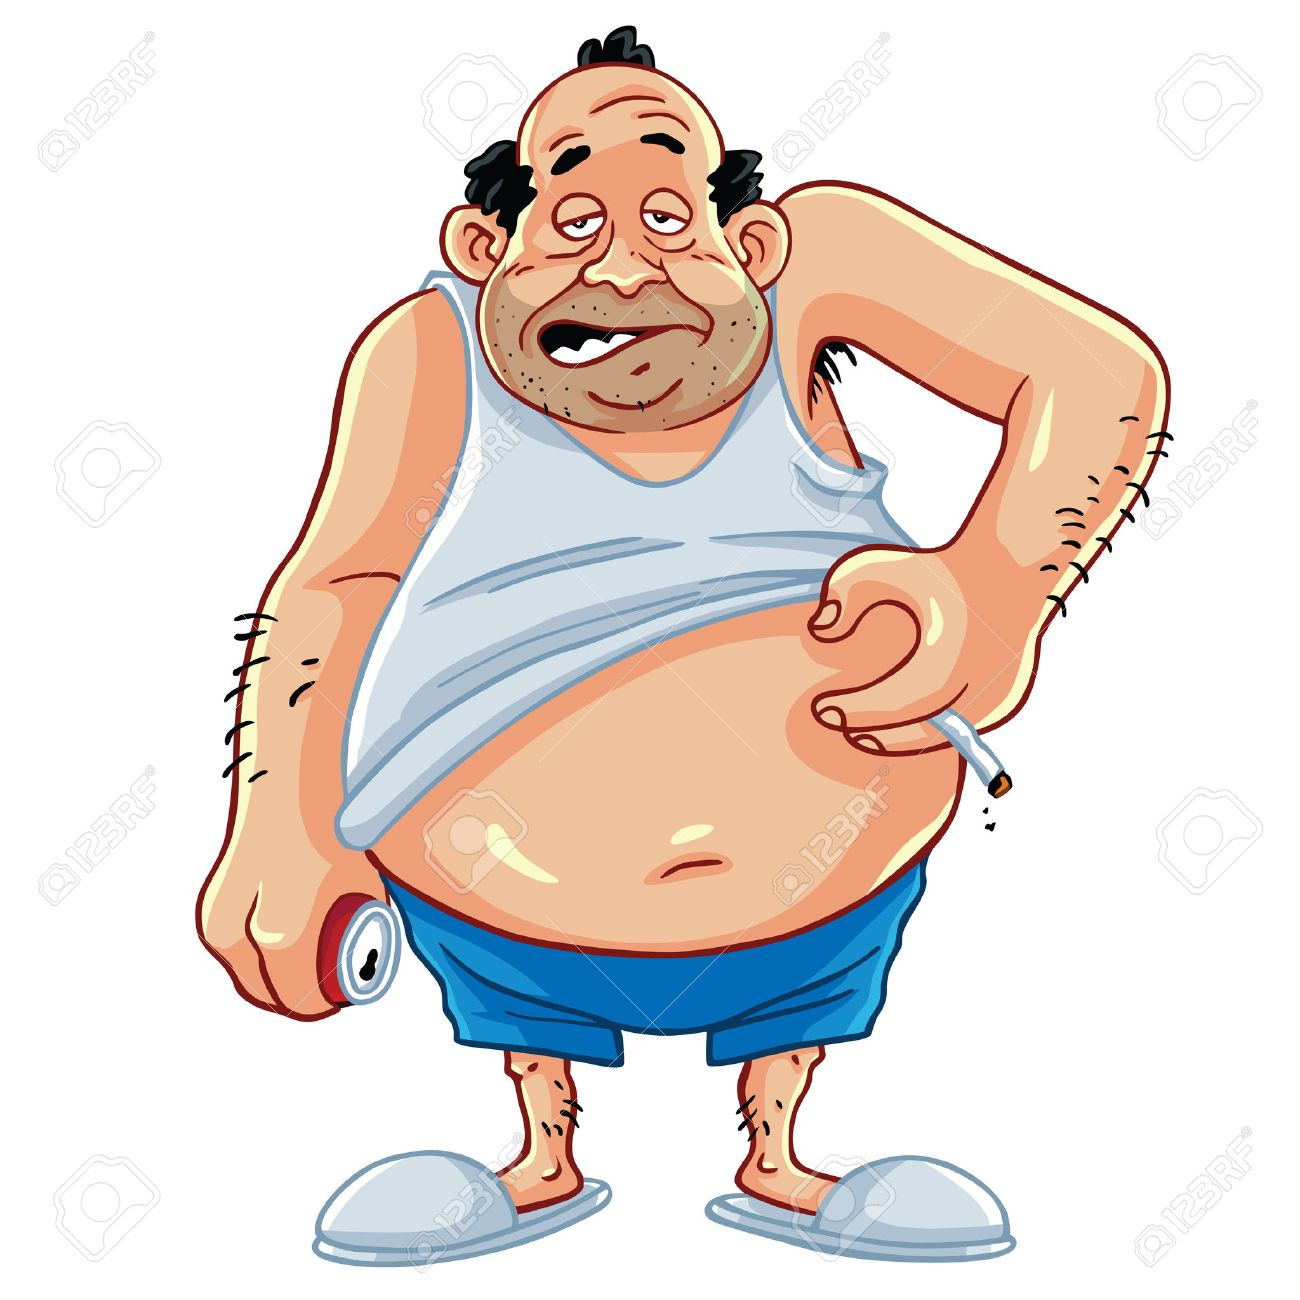 Clipart fat guy clip free download Fat guy clipart 8 » Clipart Station clip free download